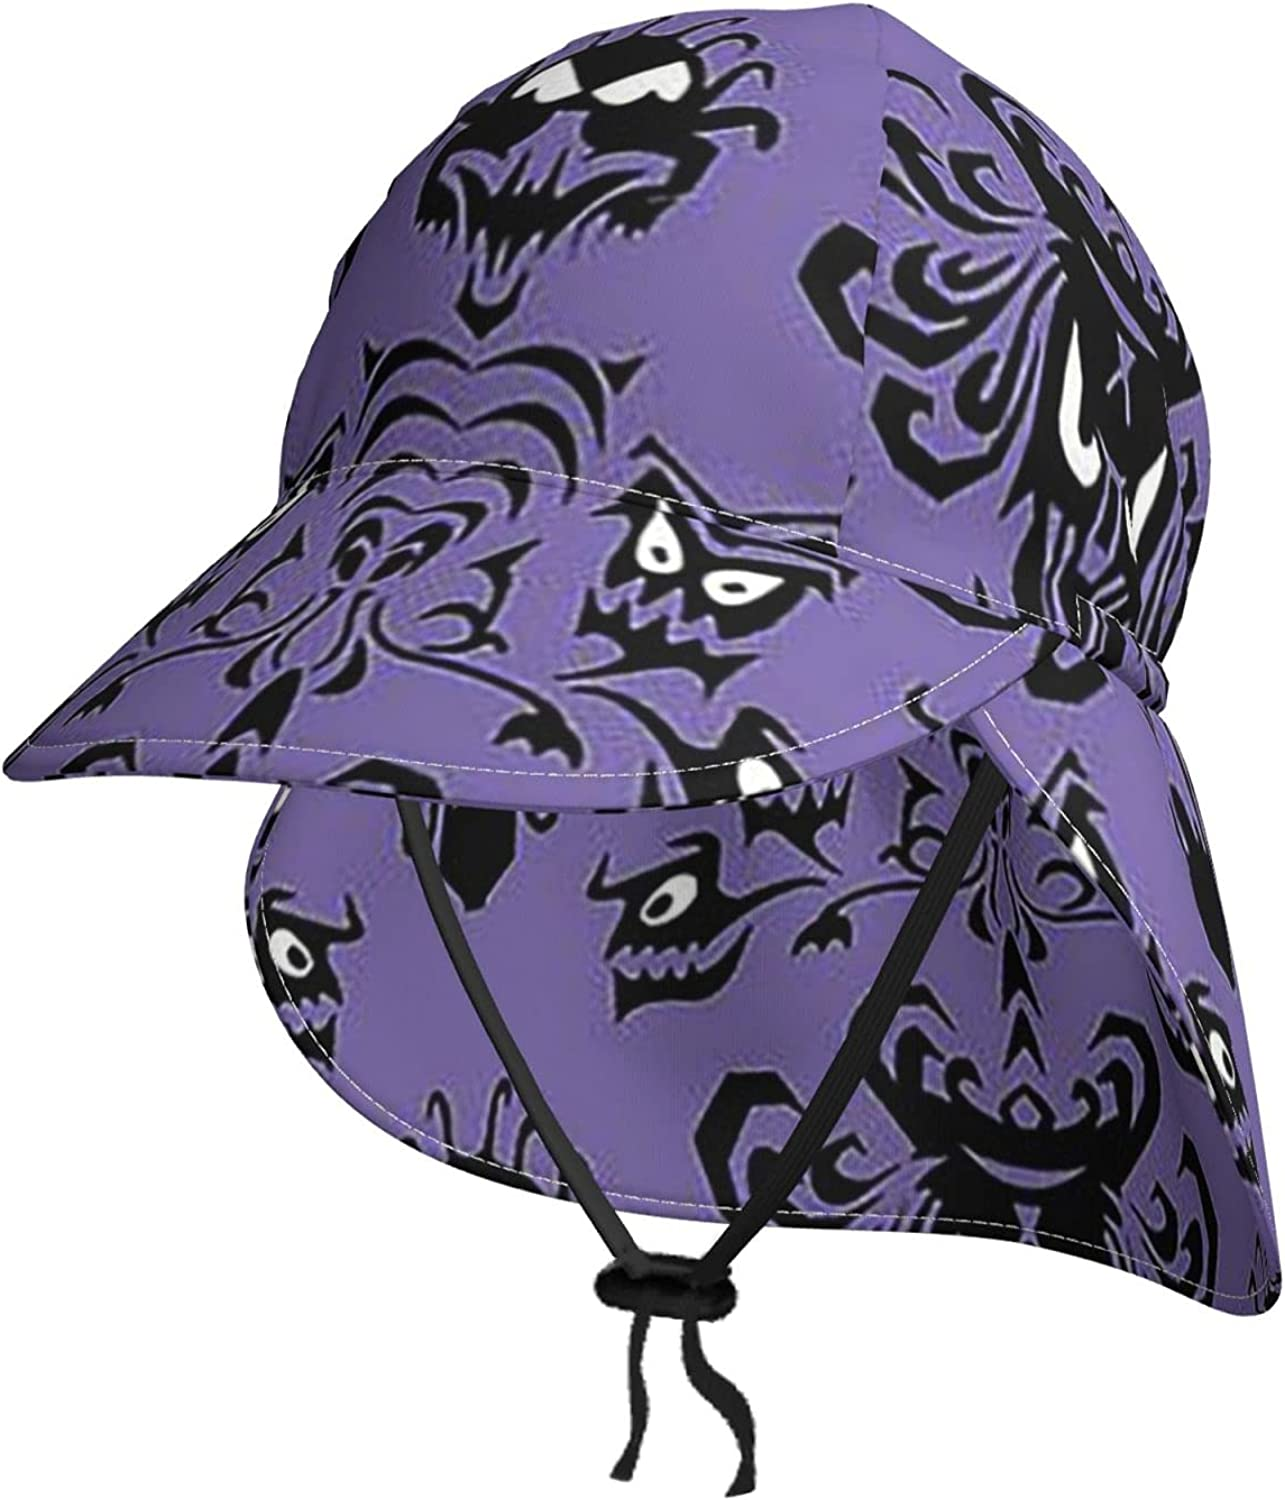 Haunted Max 80% OFF Mansion Kids Sun In a popularity Hat Neck with Breat Flap Summer